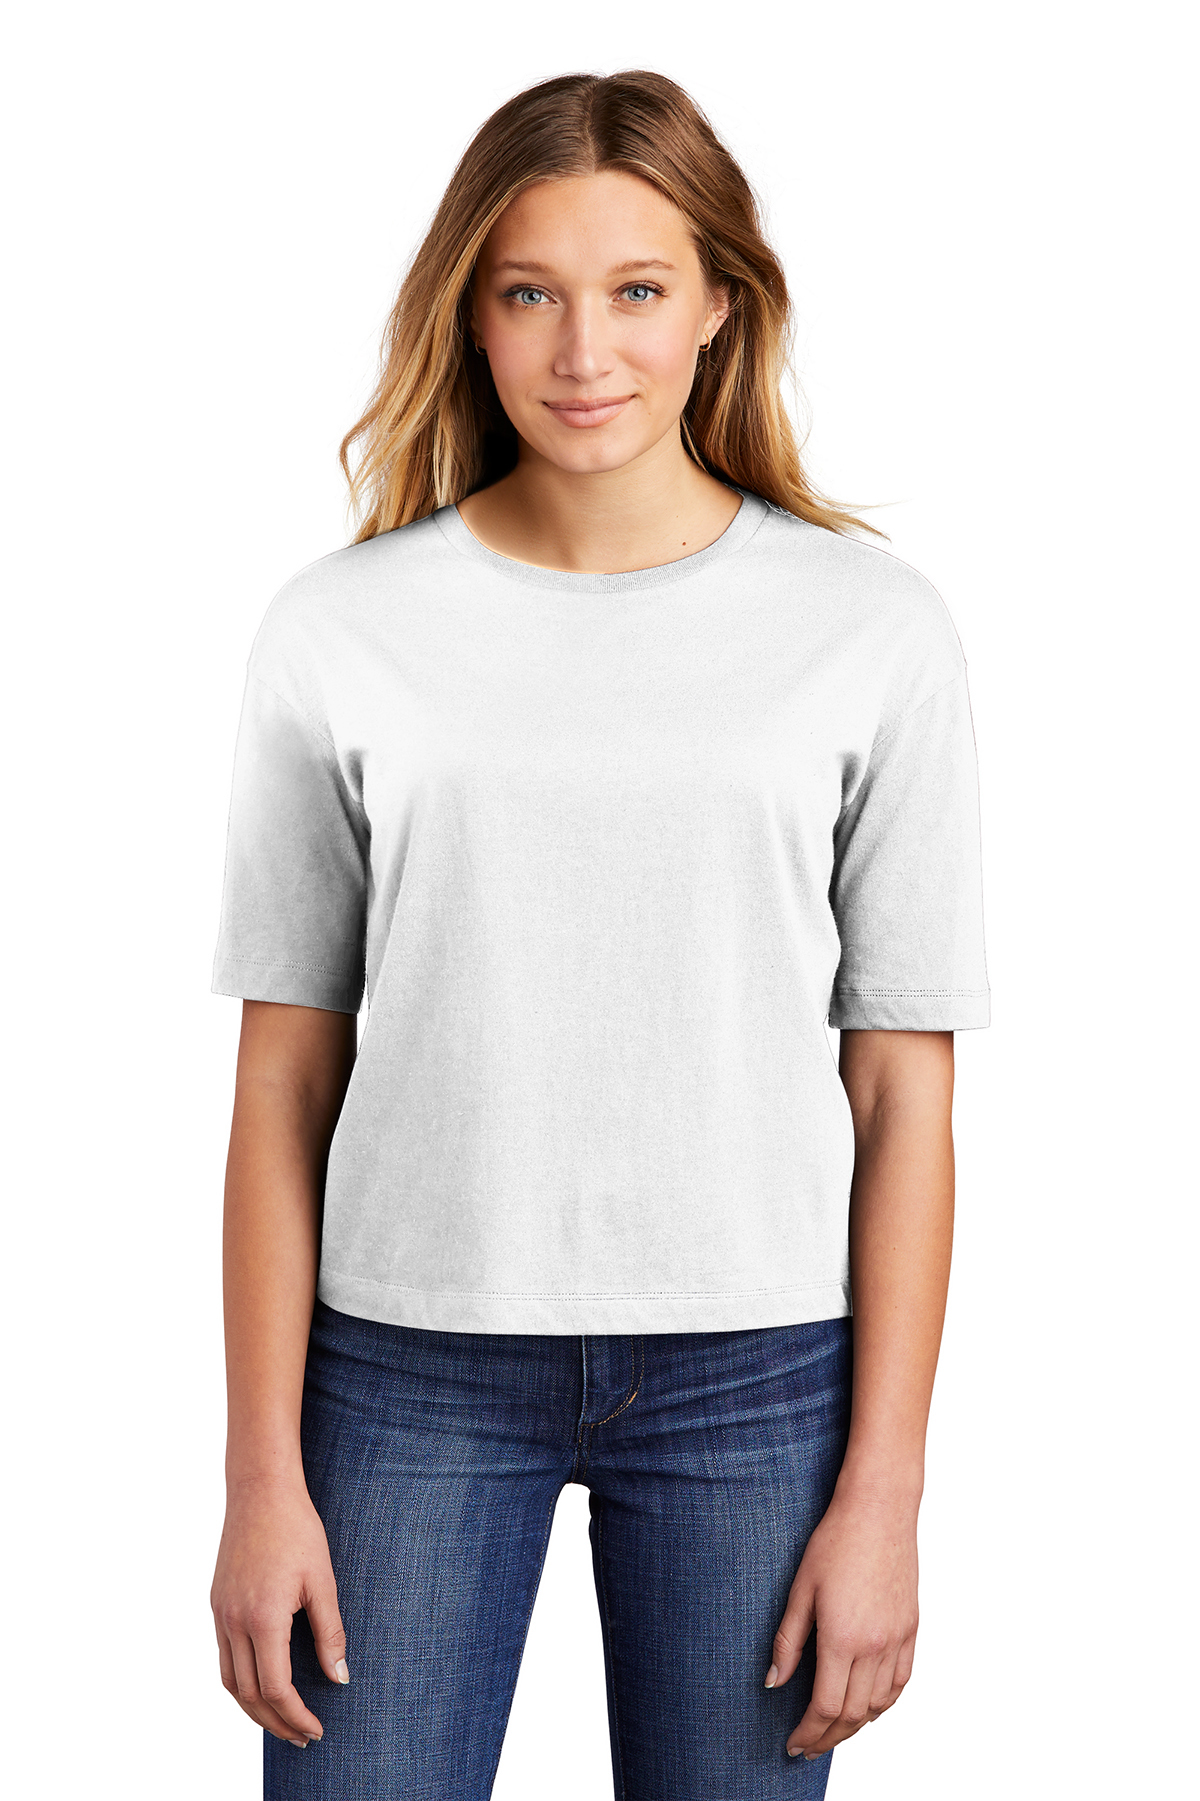 District DT6402 - Women's V.I.T. Boxy Tee